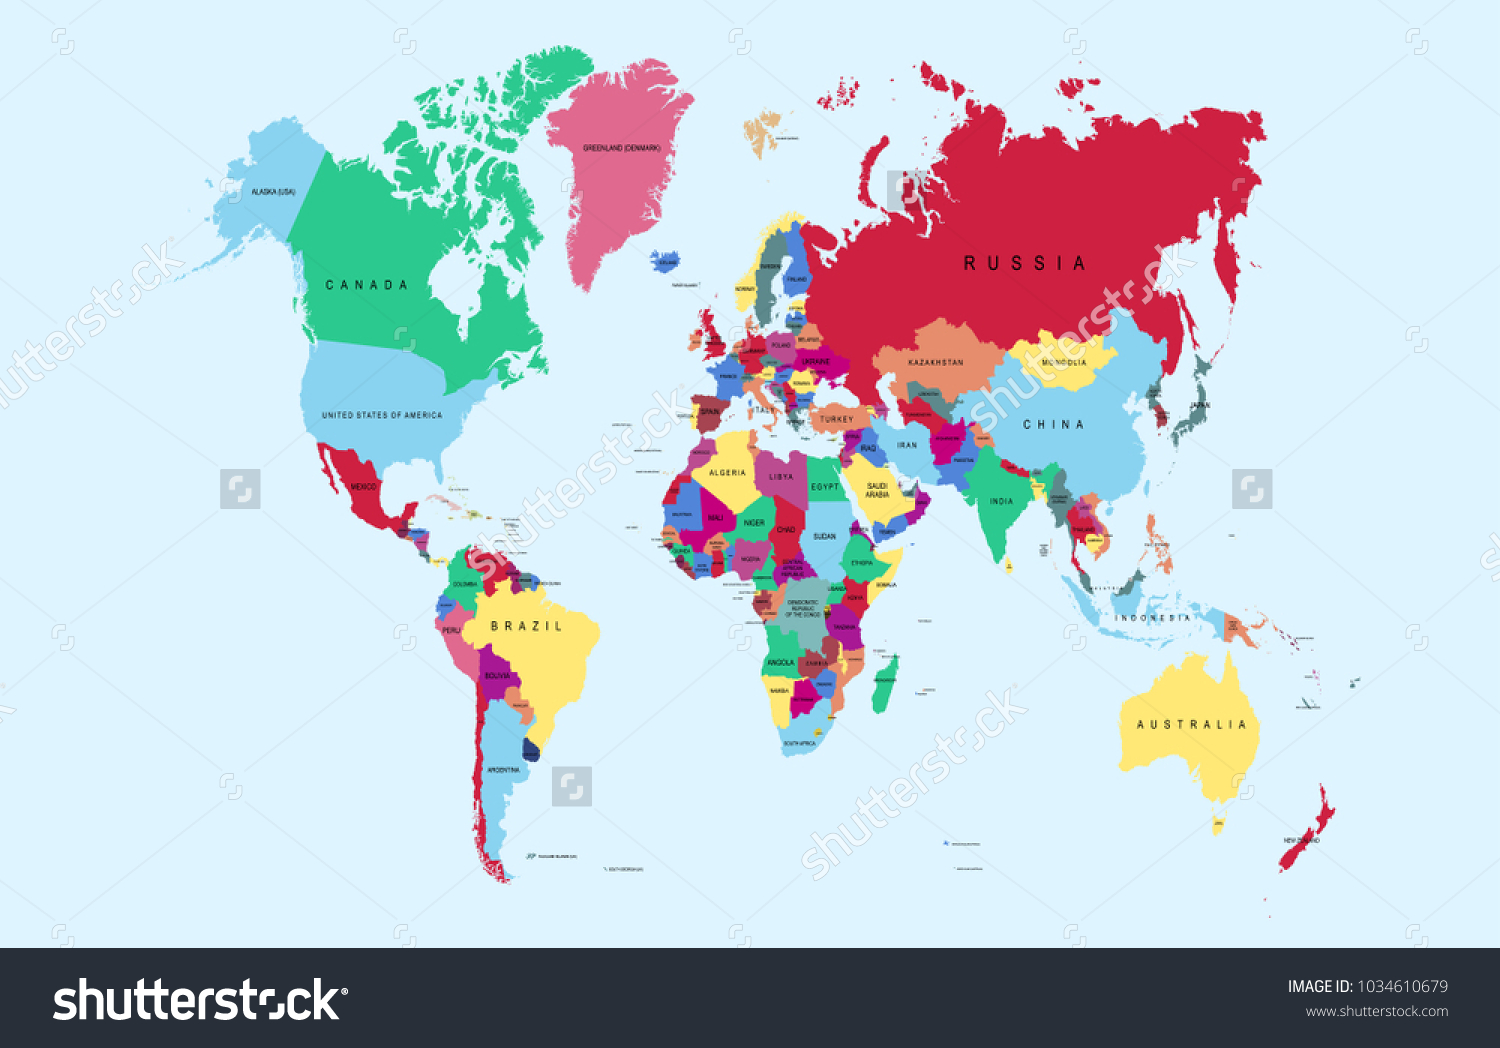 World map vector stock vector 1034610679 shutterstock world map vector gumiabroncs Choice Image